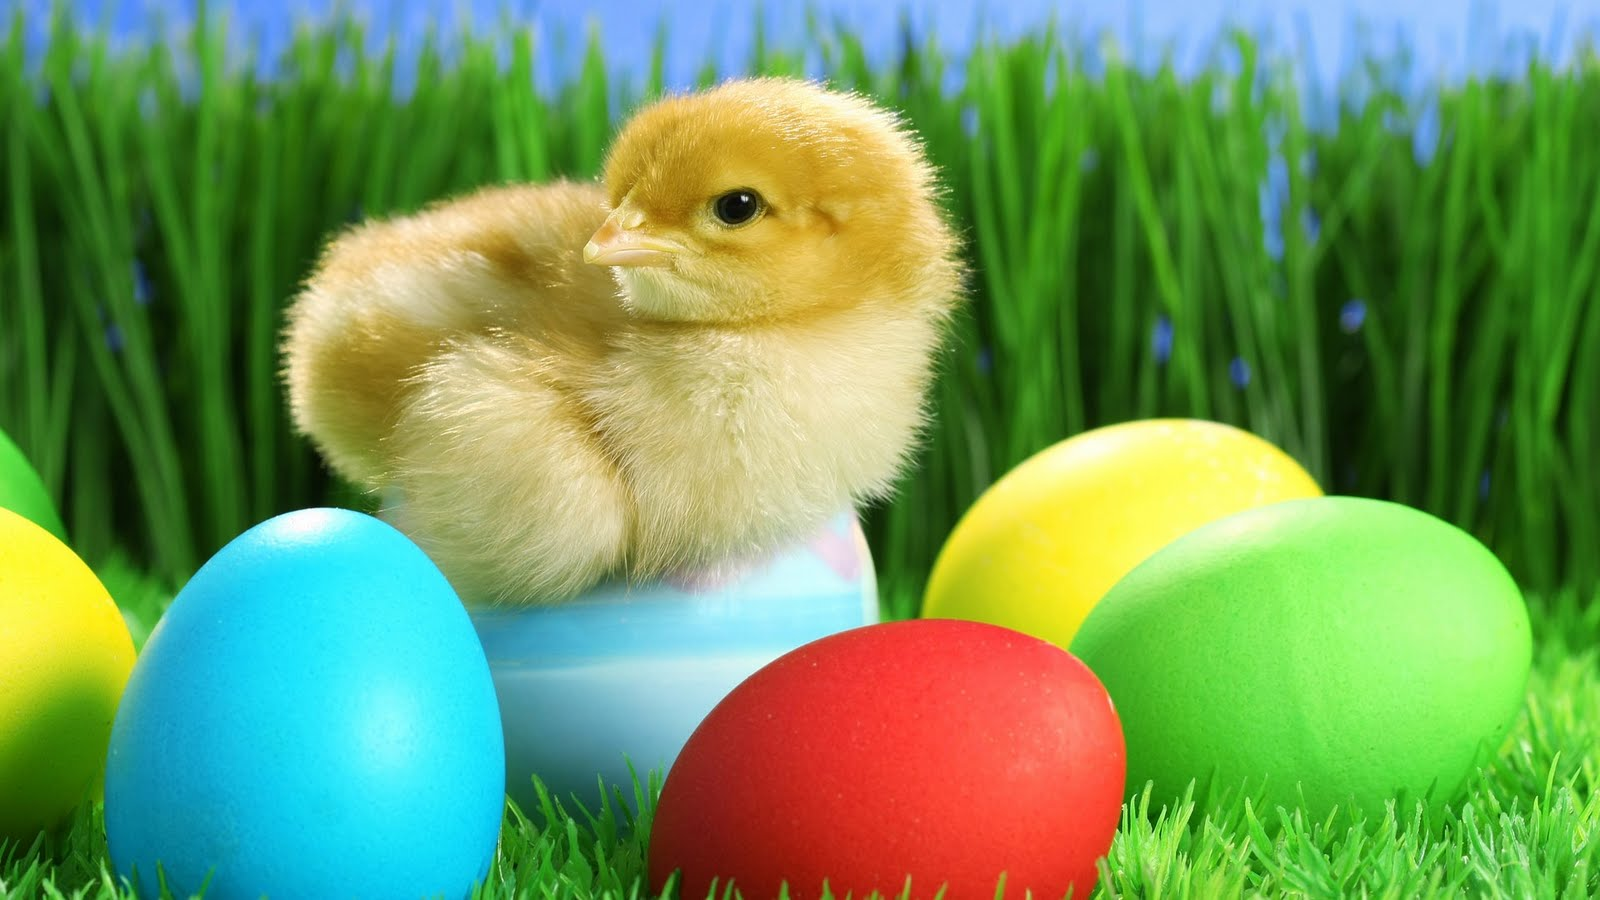 Funny Easter Wallpapers for Desktop Backgrounds Desktop Background 1600x900